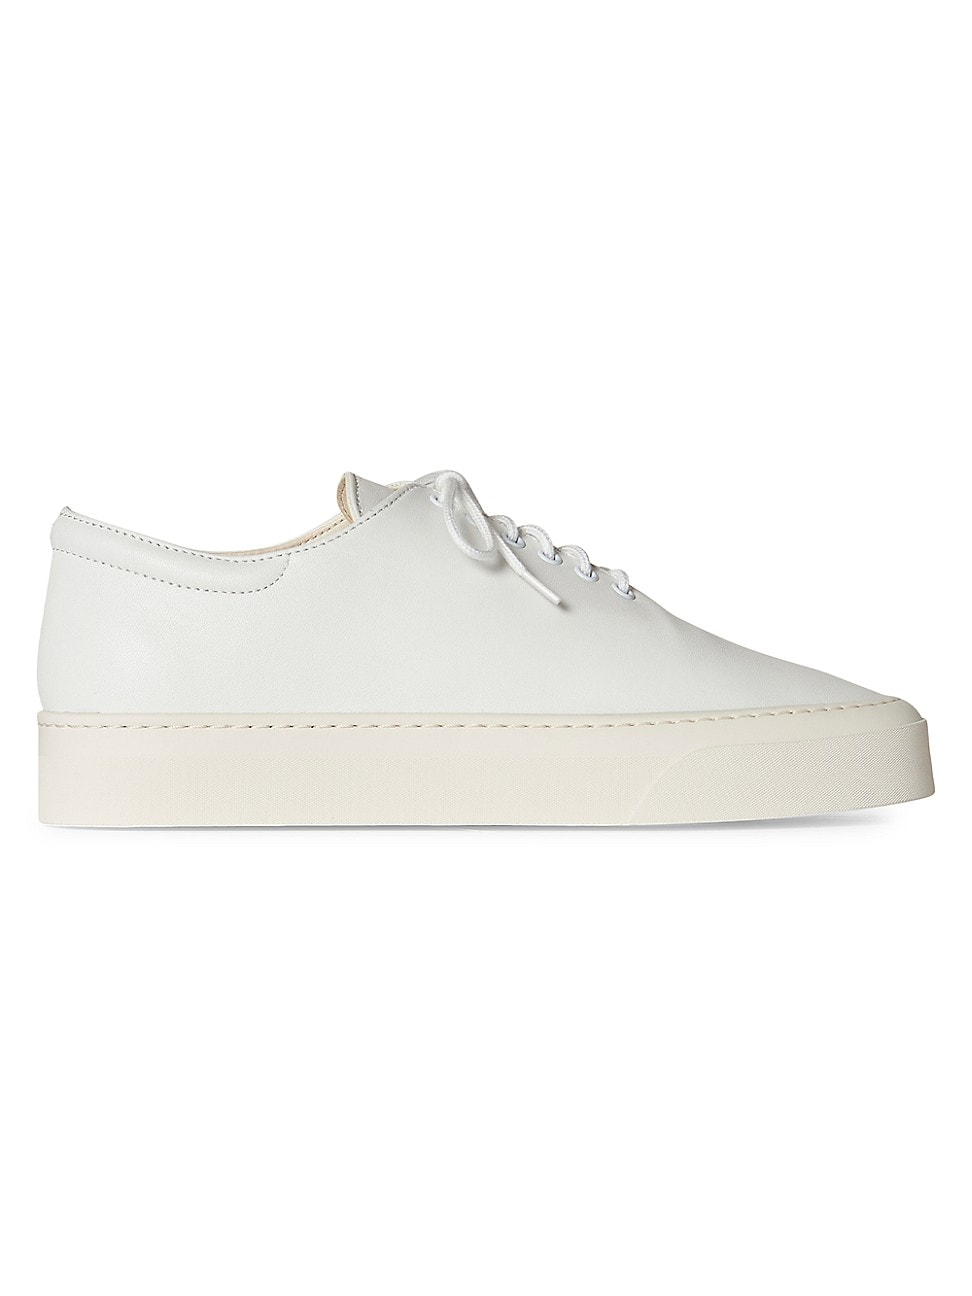 The Row WOMEN'S MARIE LEATHER SNEAKERS